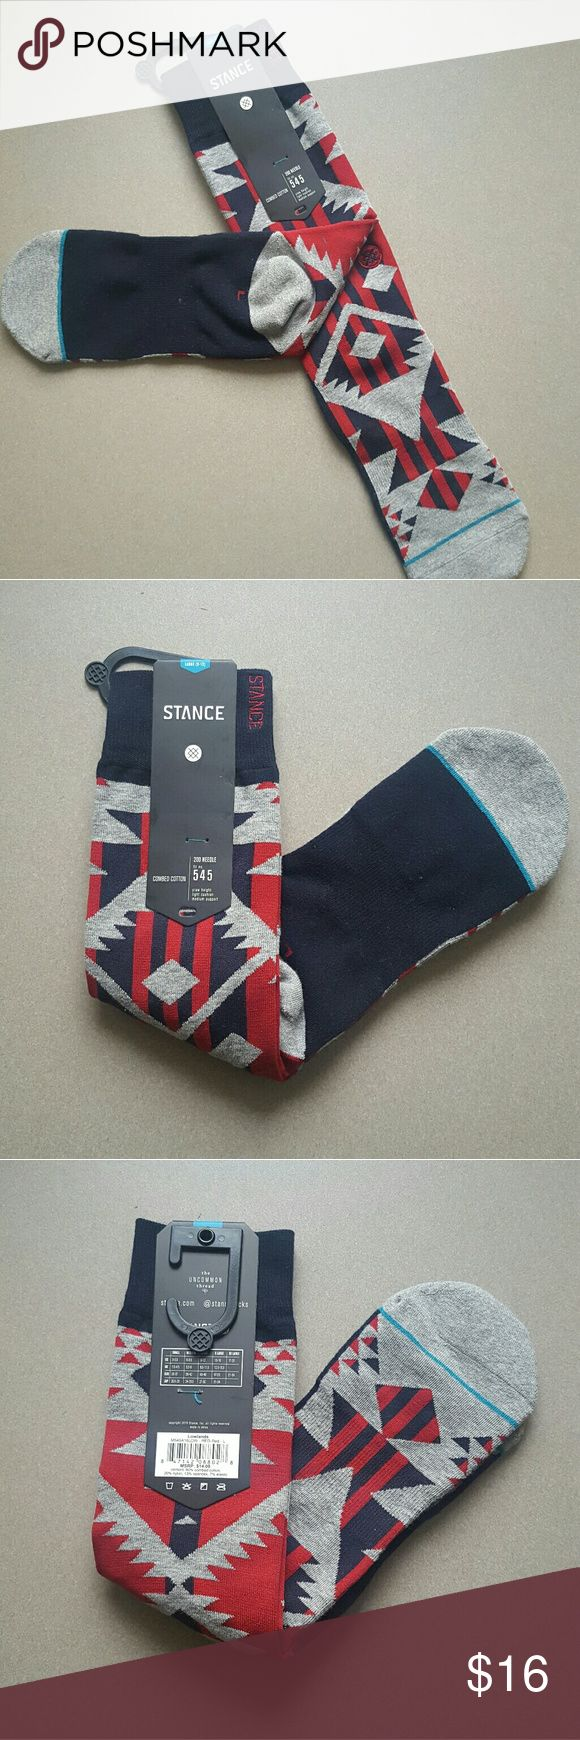 Stance Tribal Print Socks - L NWT Stance Tribal print socks. Dark blue with red and gray accents, and a reinforced heel and toe.    #StanceSocks #stance #aztec #socks Stance Underwear & Socks Casual Socks